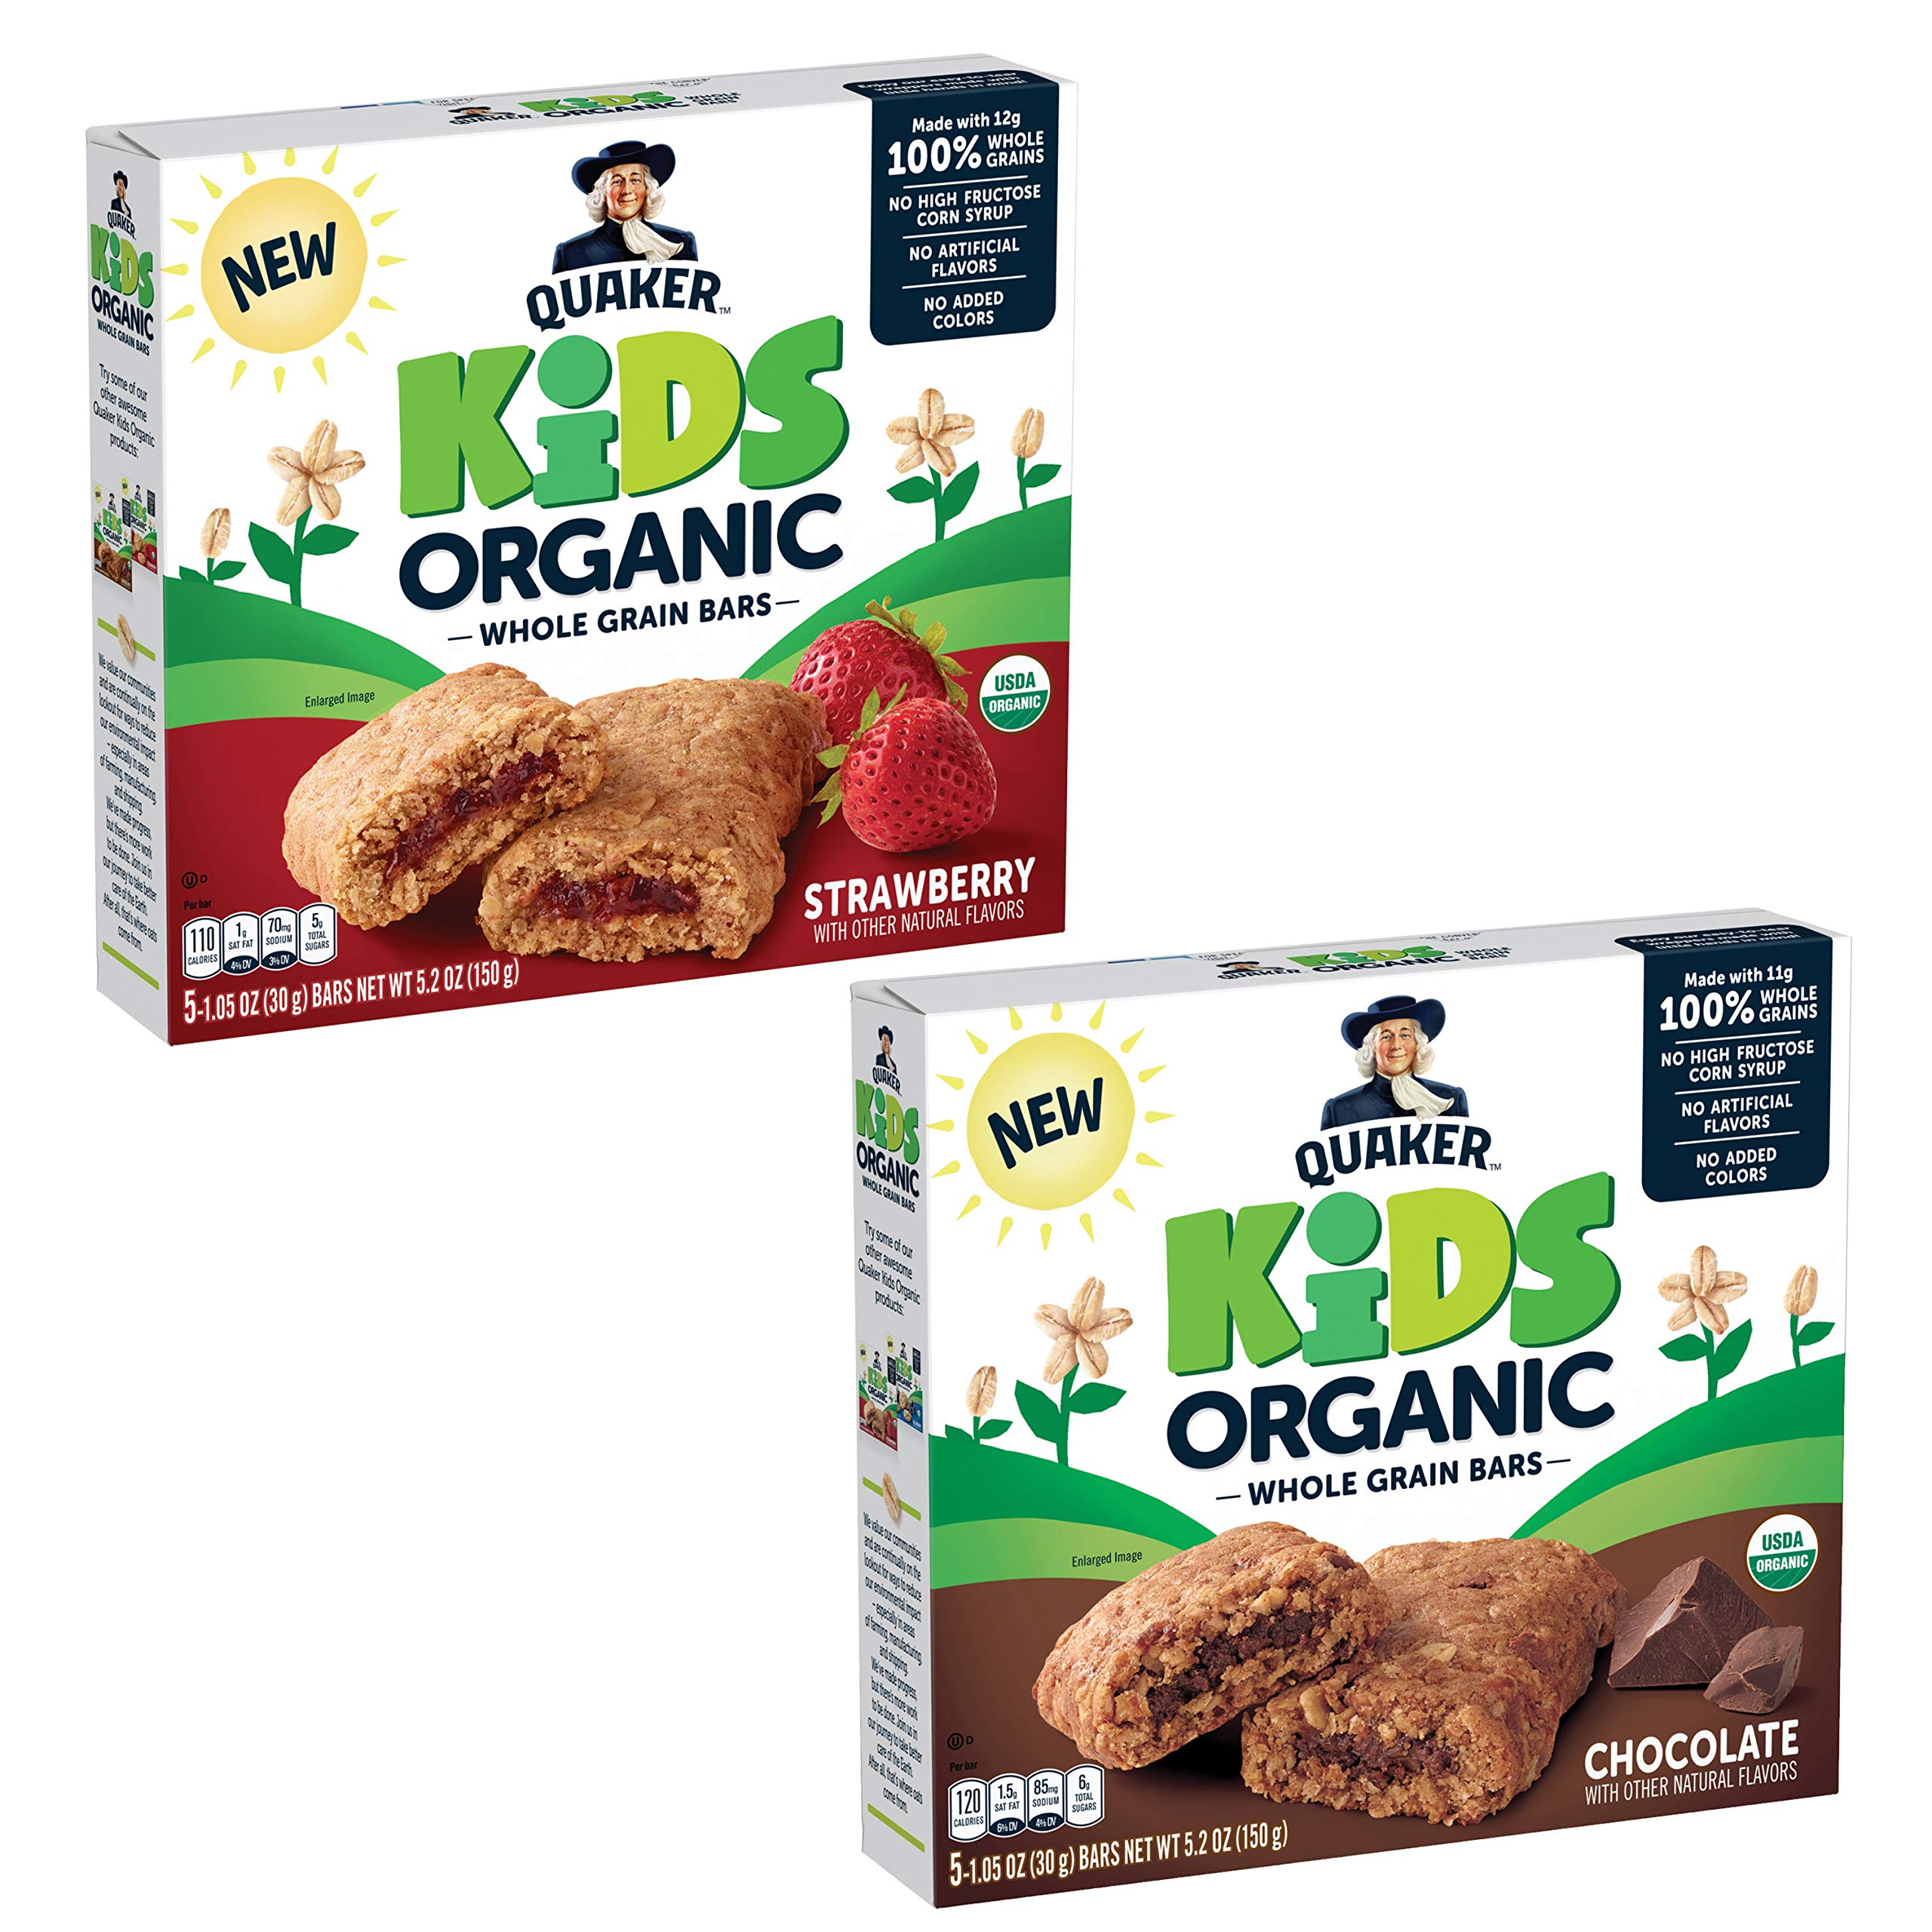 Quaker Kids Organic Whole Grain Bars, 2 Flavor Variety Pack, 1.05oz Bars, 20 Count by Quaker